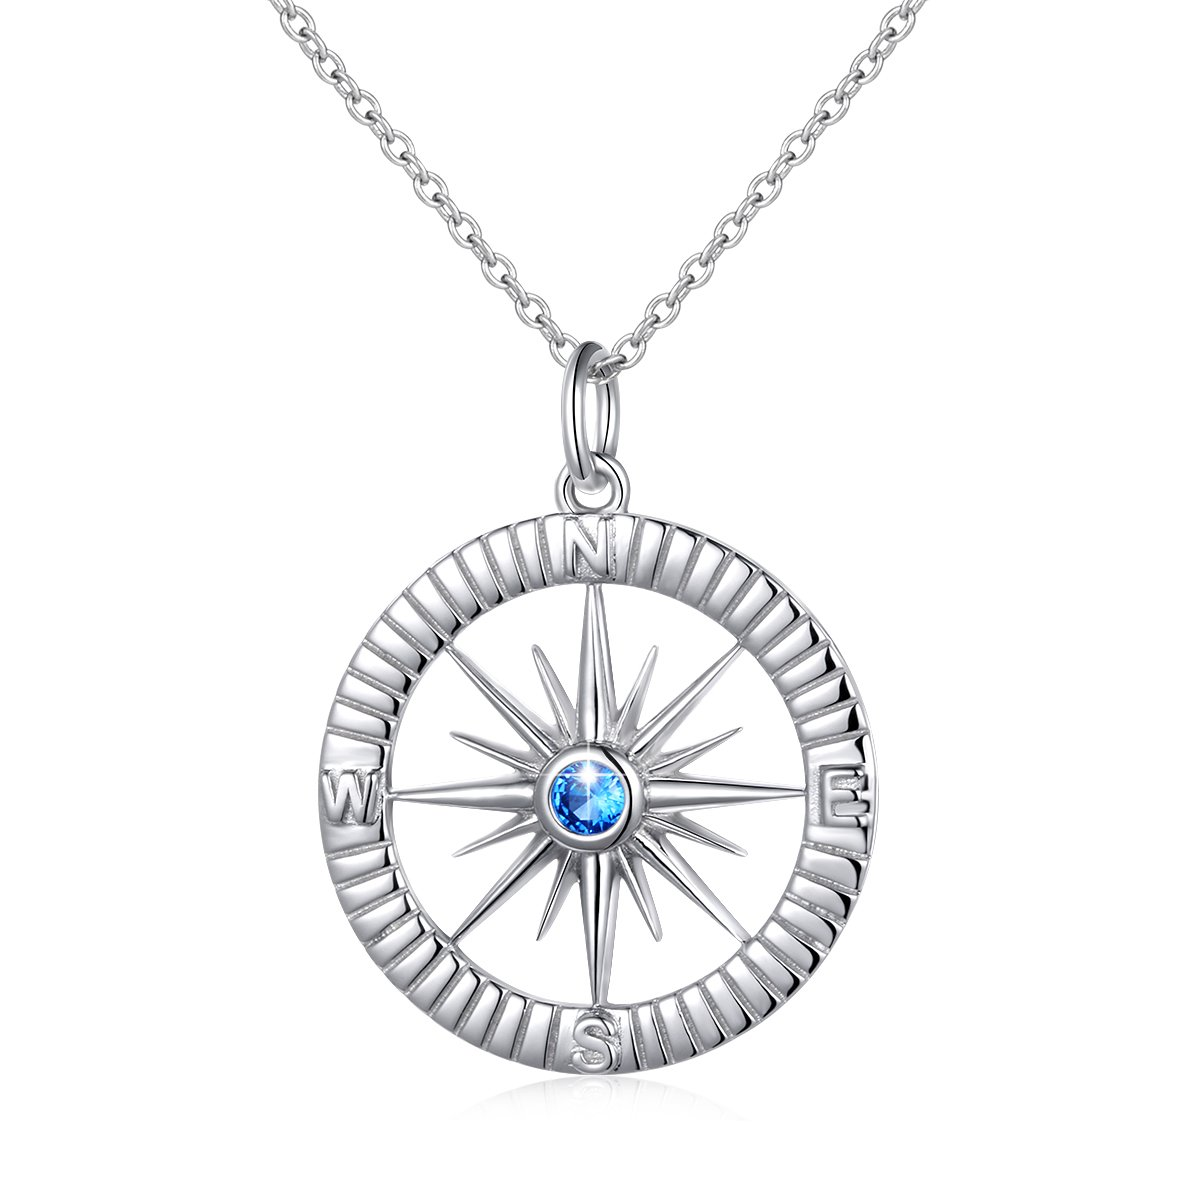 SILVER MOUNTAIN S925 Sterling Silver Compass No Matter Where Bracelet and Pendant Necklace 18'' (necklace A)